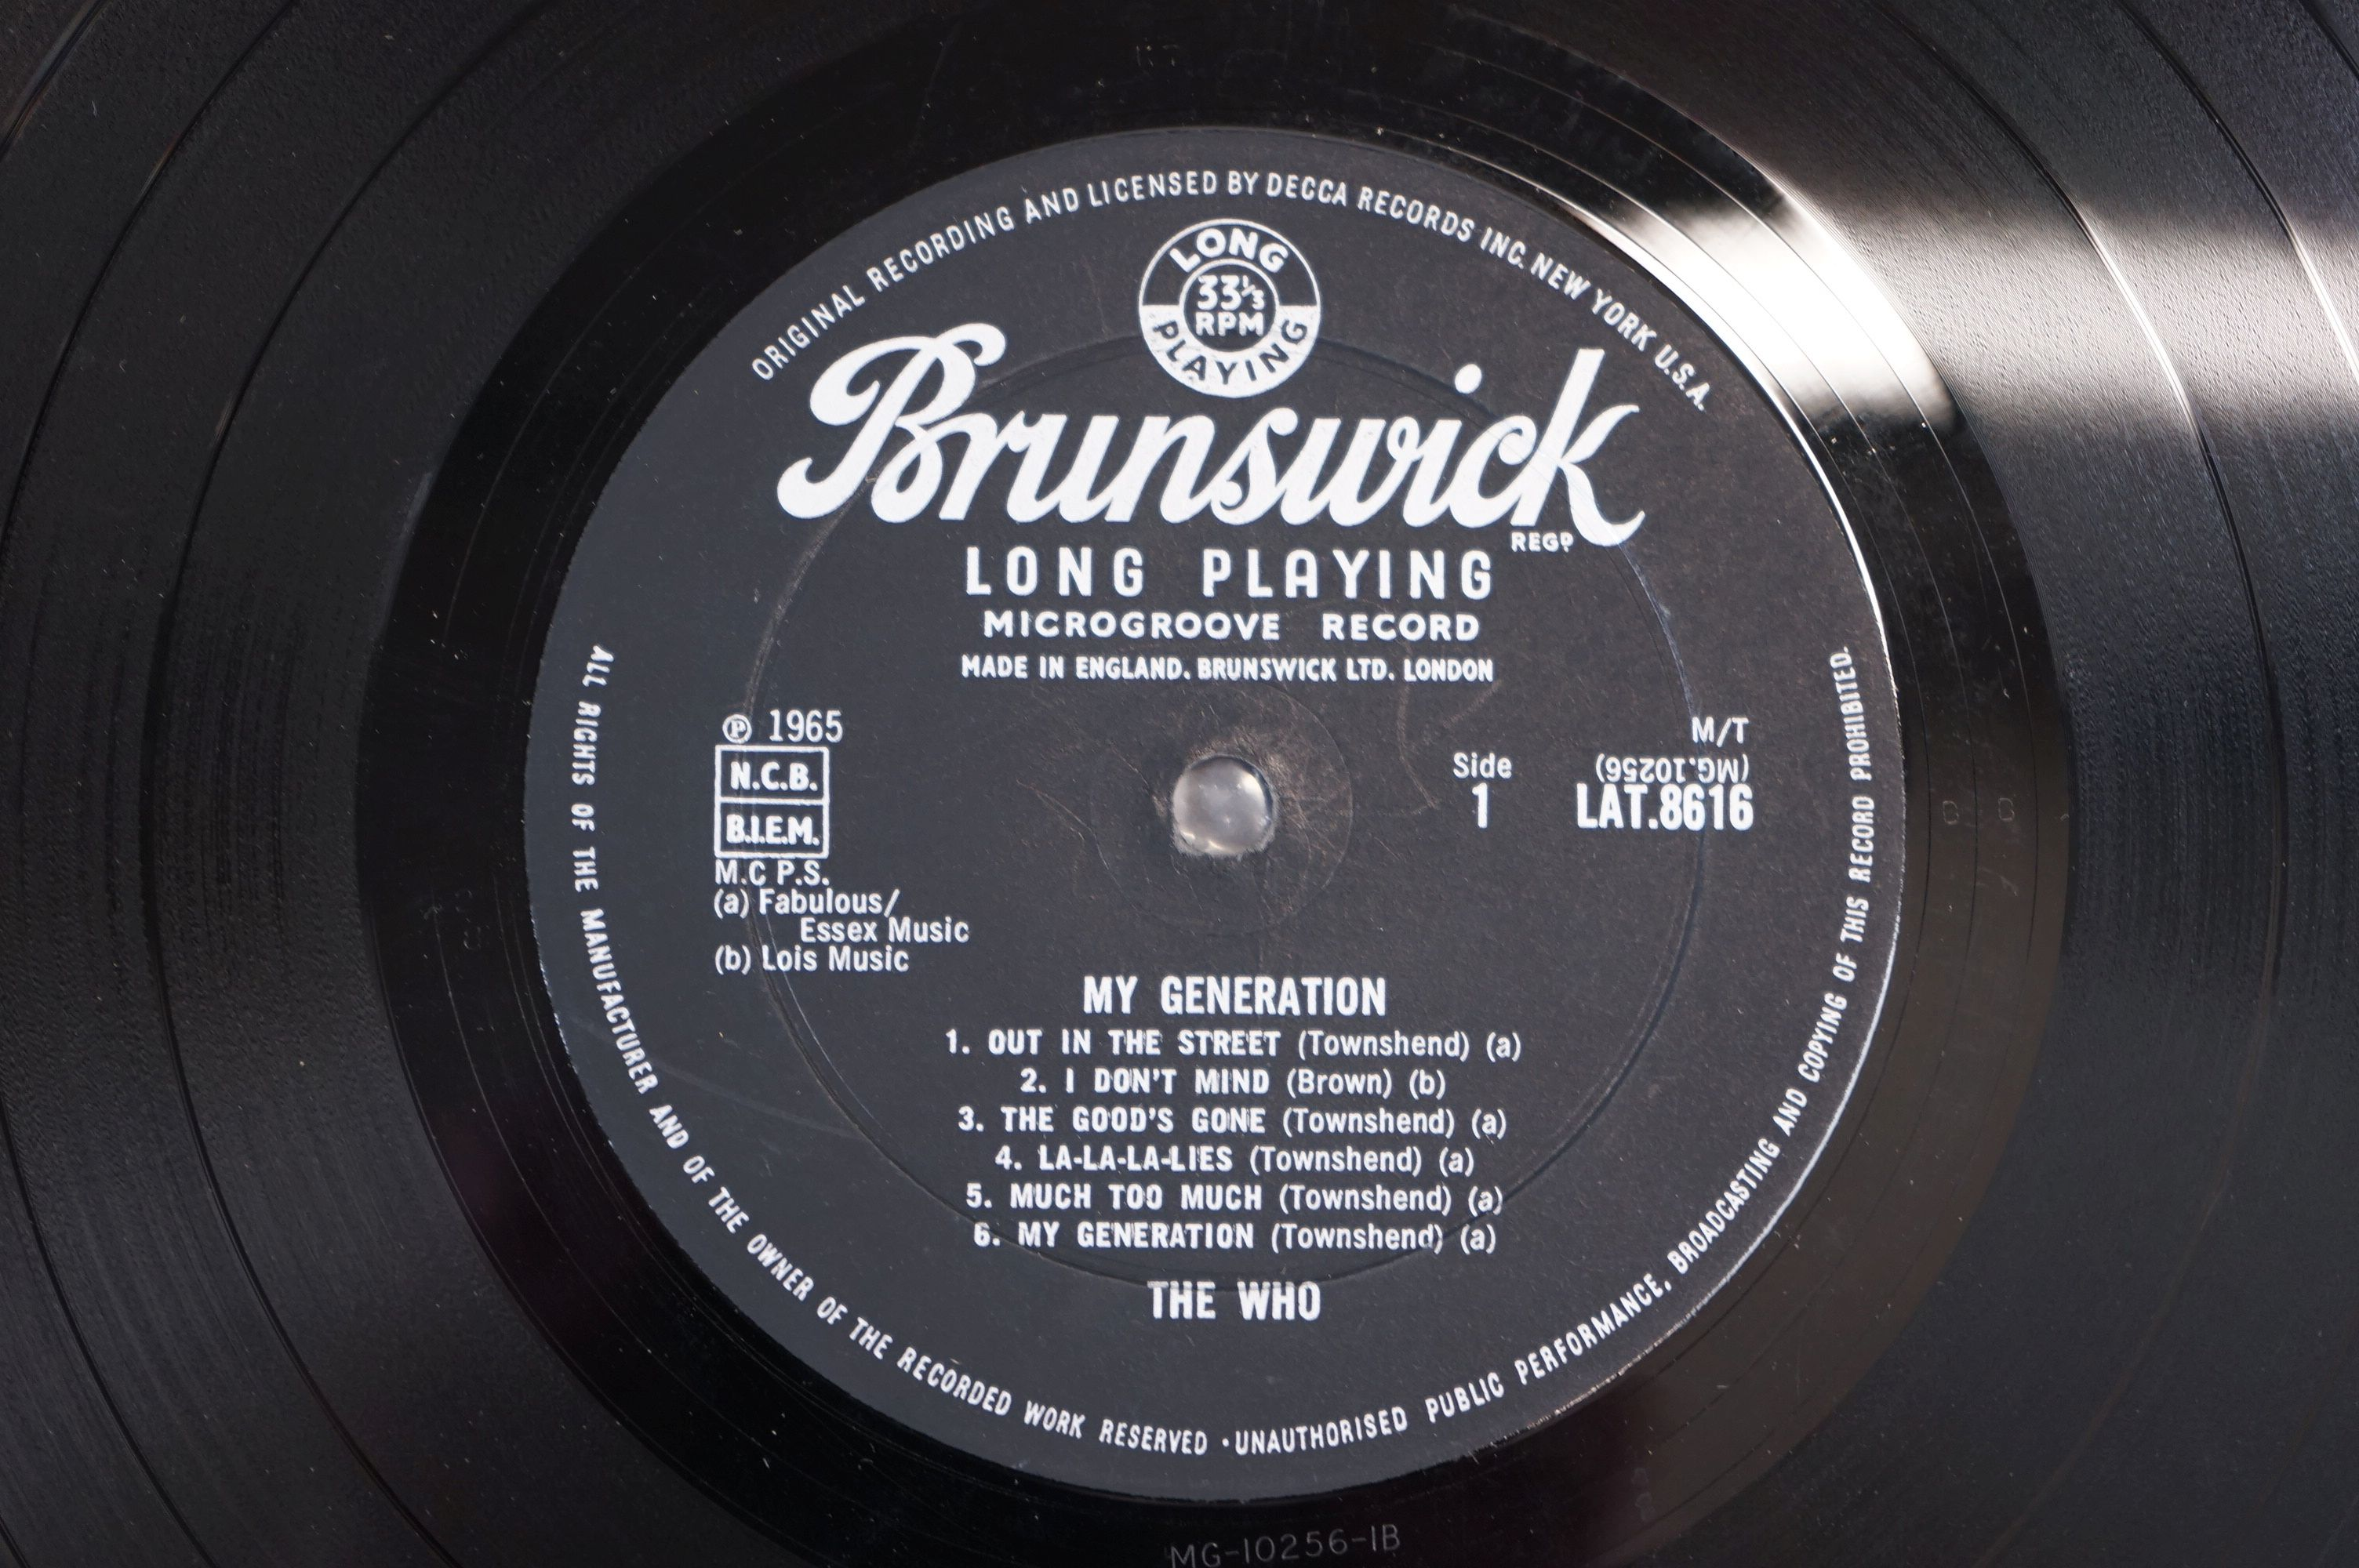 Vinyl - The Who My Generation LP on Brunswick LAT8616 mono with laminated front sleeve, silver & - Image 3 of 8